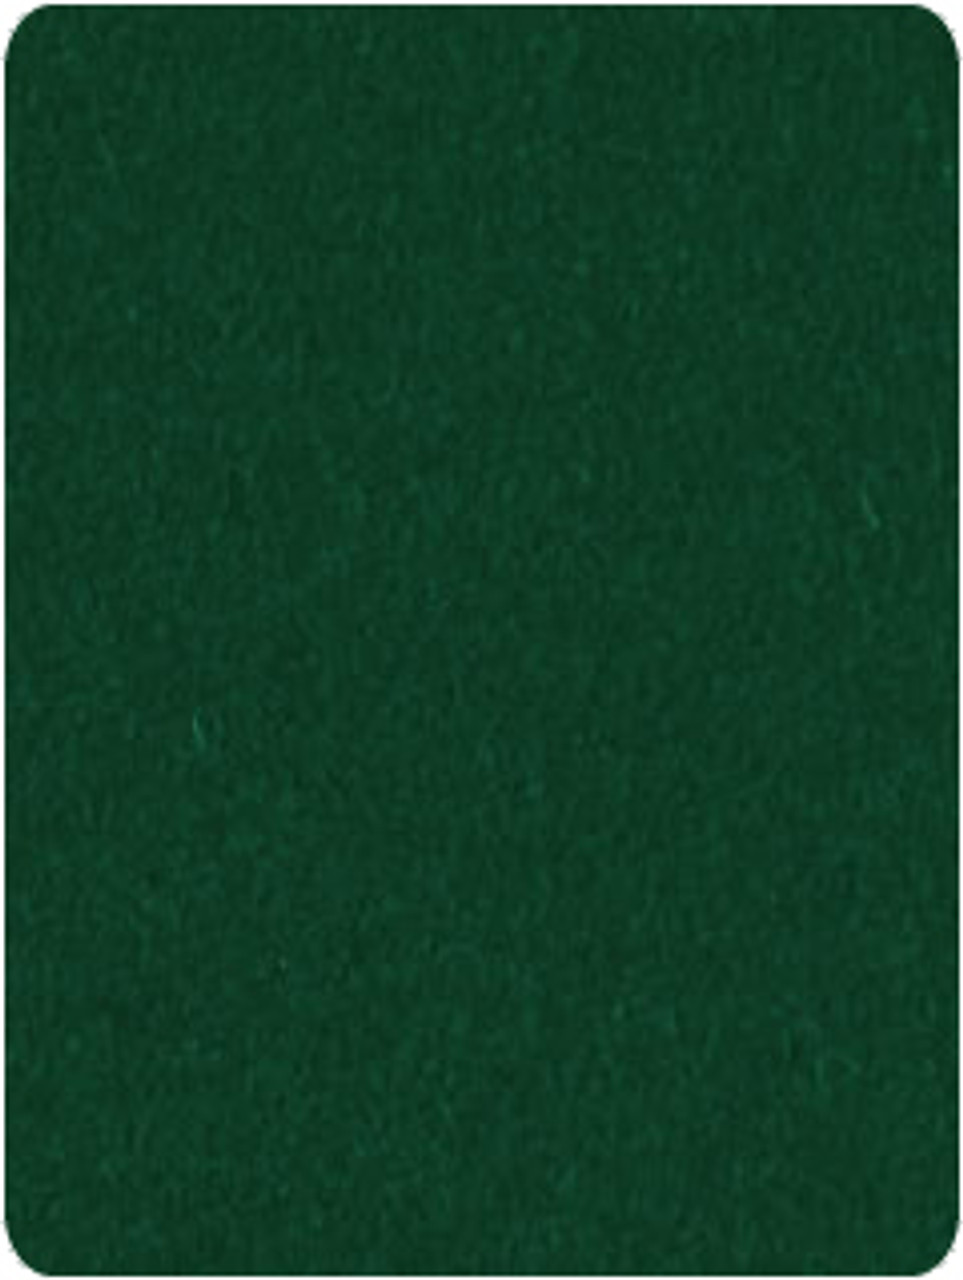 Invitational 8' Basic Green Pool Table Felt